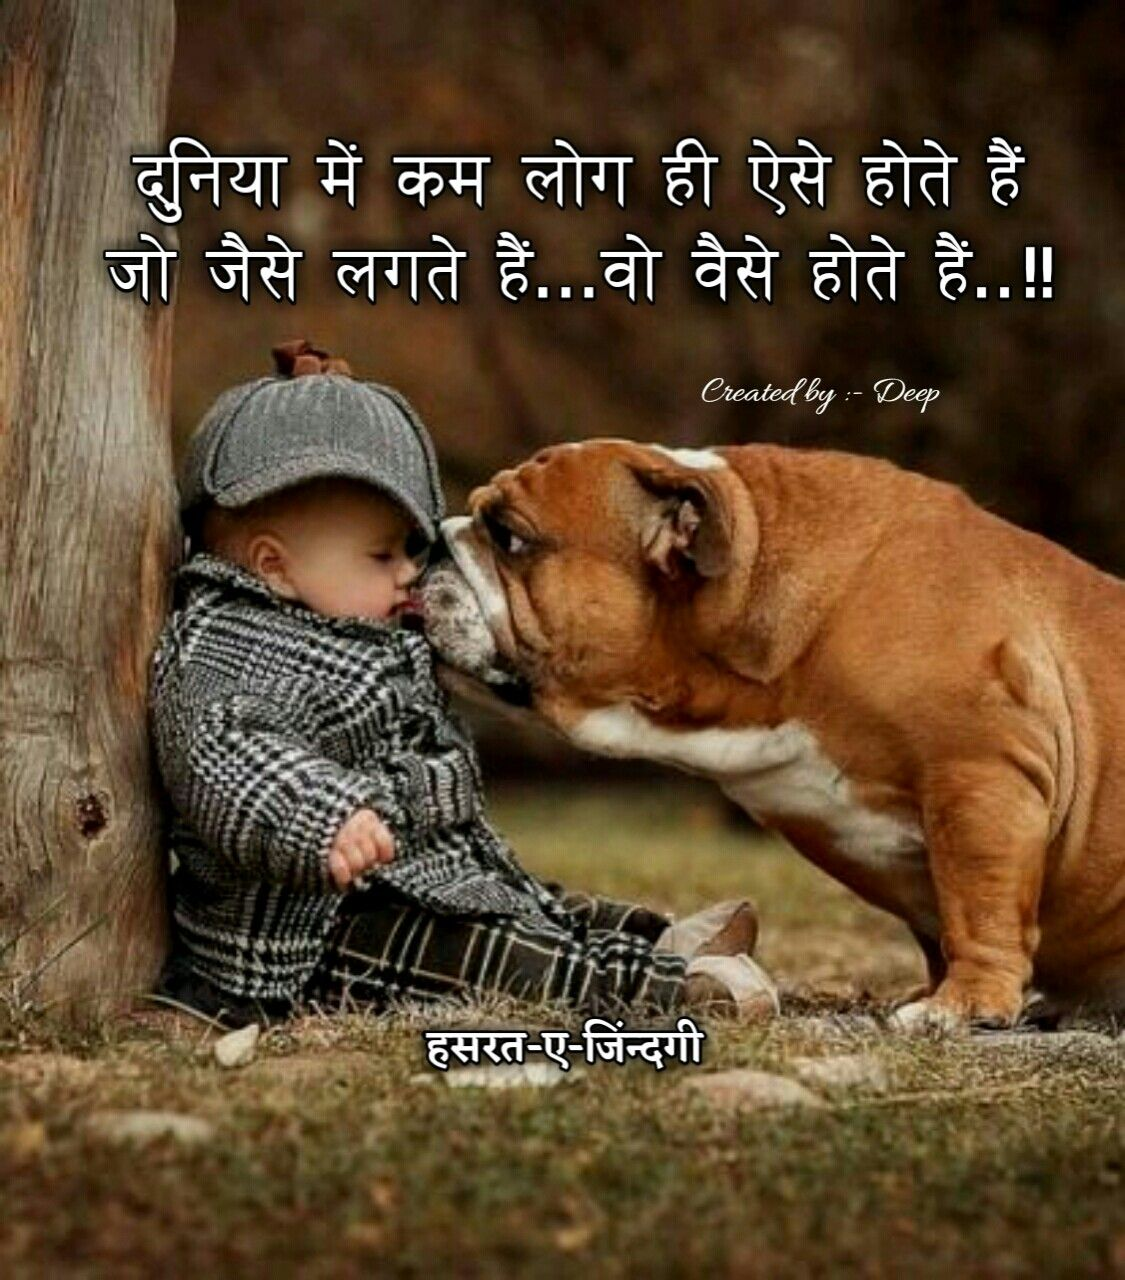 Pin By Mira On Hindi Pinterest Cute Animals Cute And Animals